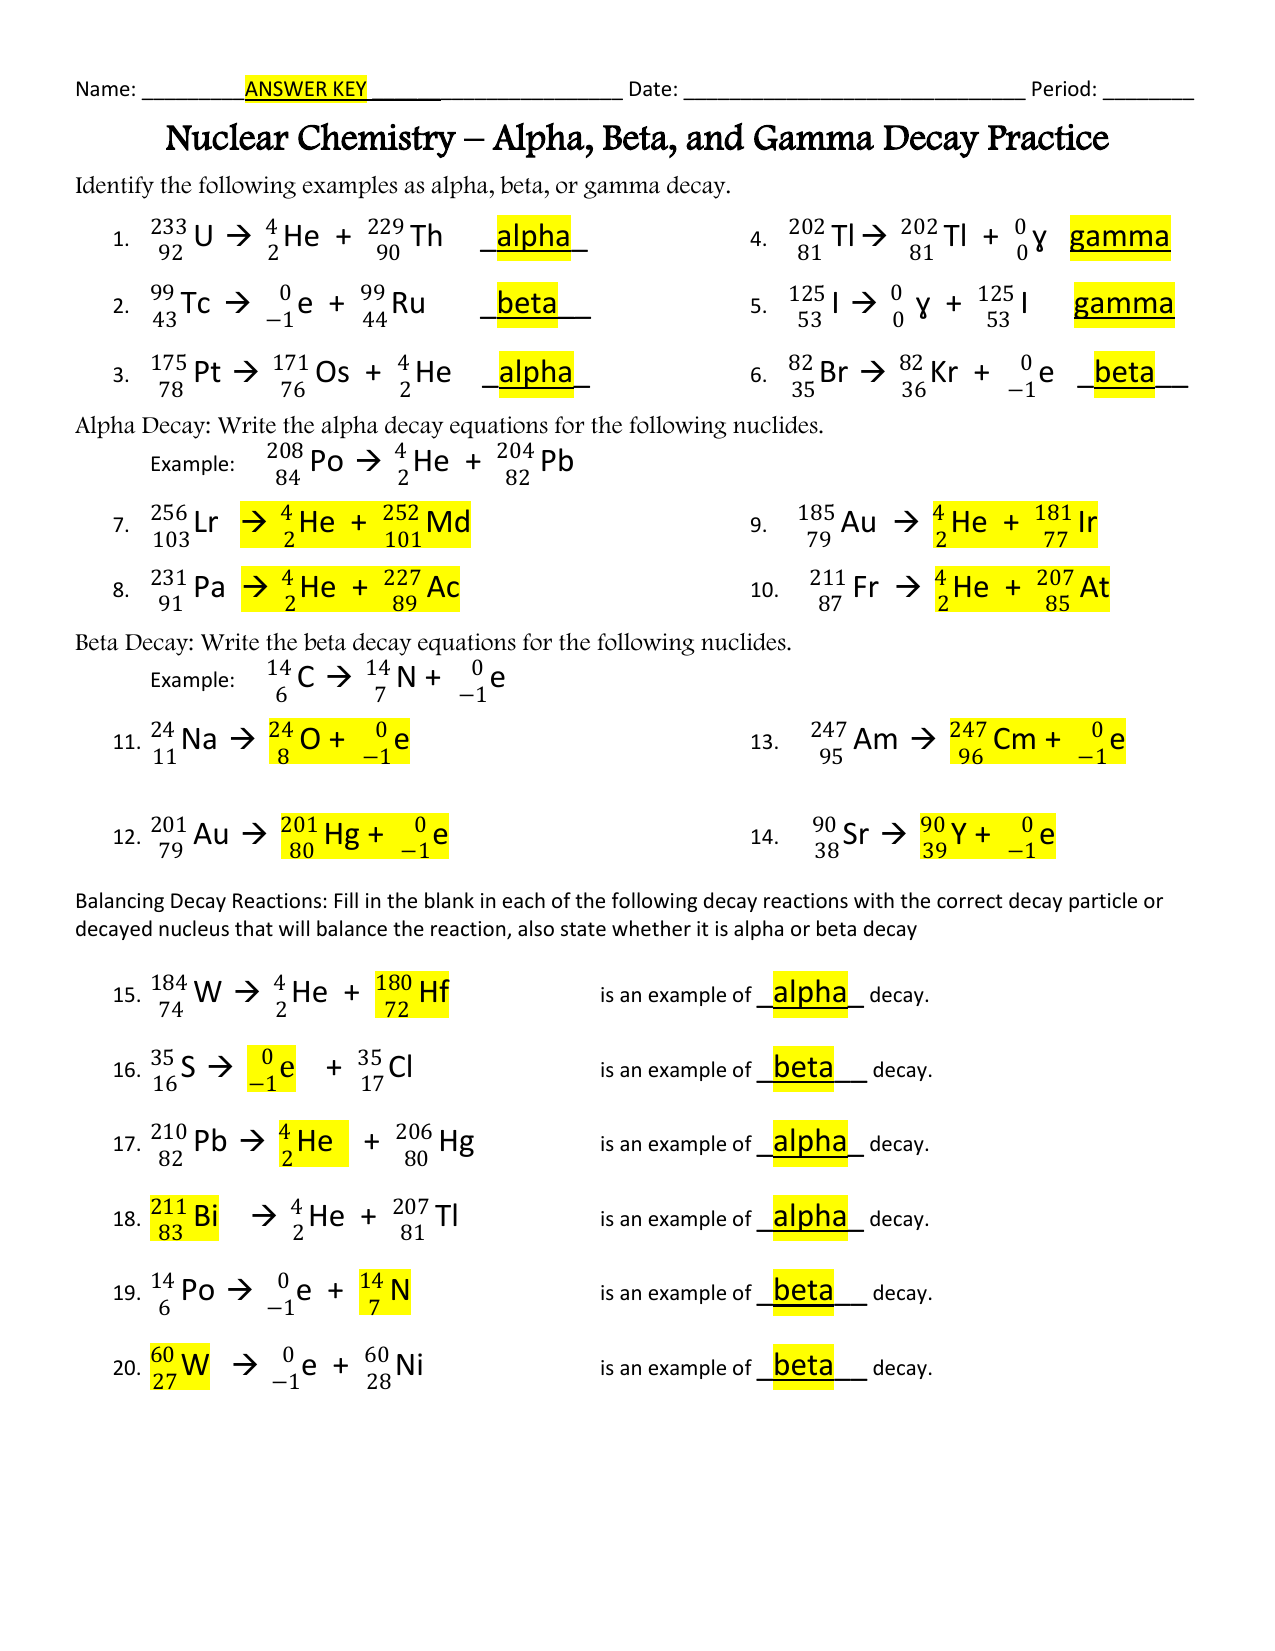 Nuclear Chemistry Practice 1/2 Sheet